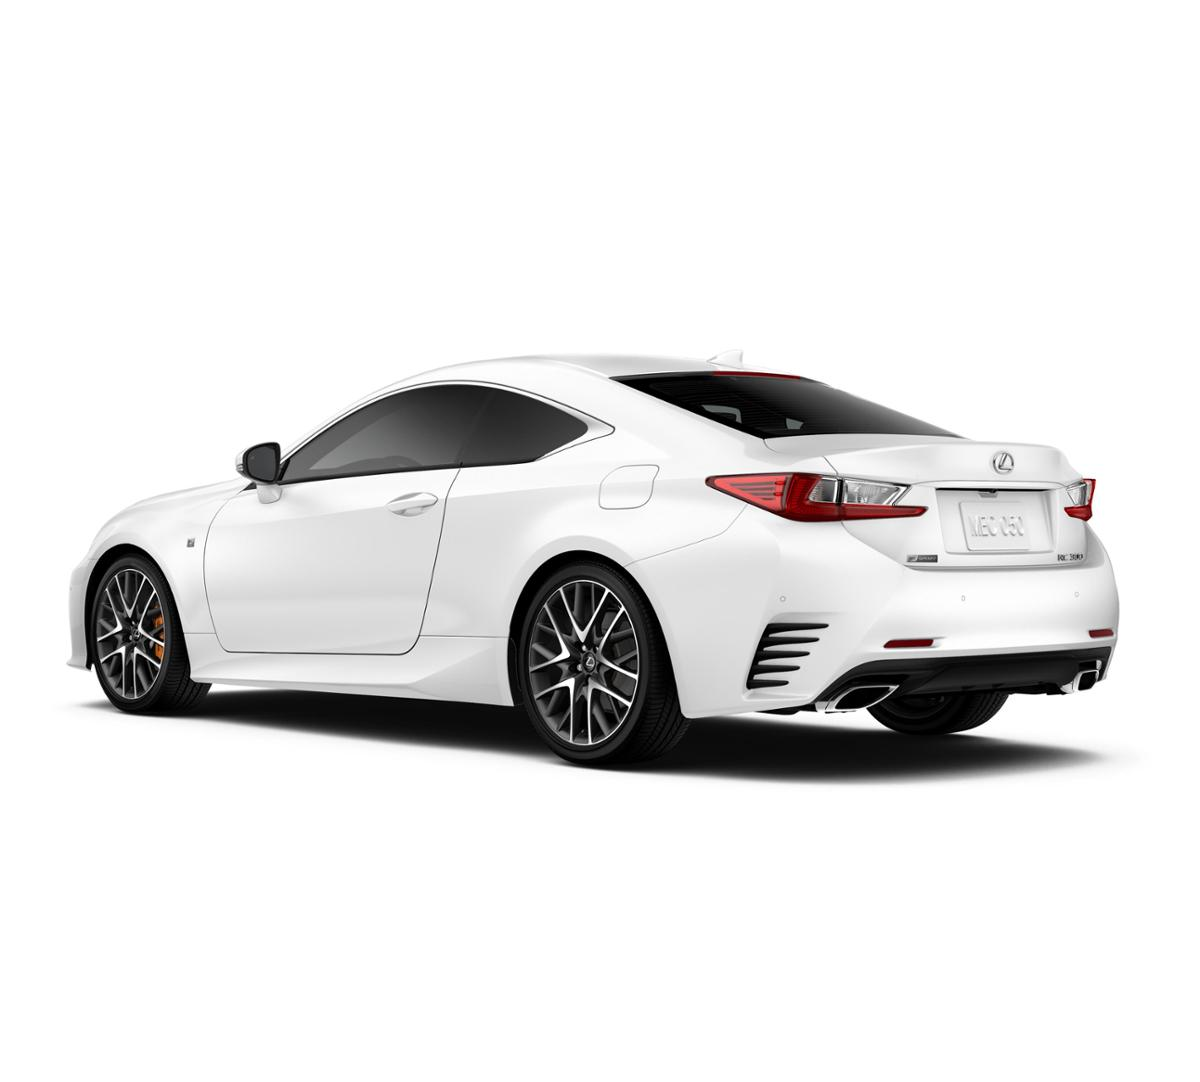 Sewell Lexus Fort Worth >> Fort Worth New 2018 Lexus RC 300 Ultra White: Car for Sale in DFW - JTHHA5BC1J5008213